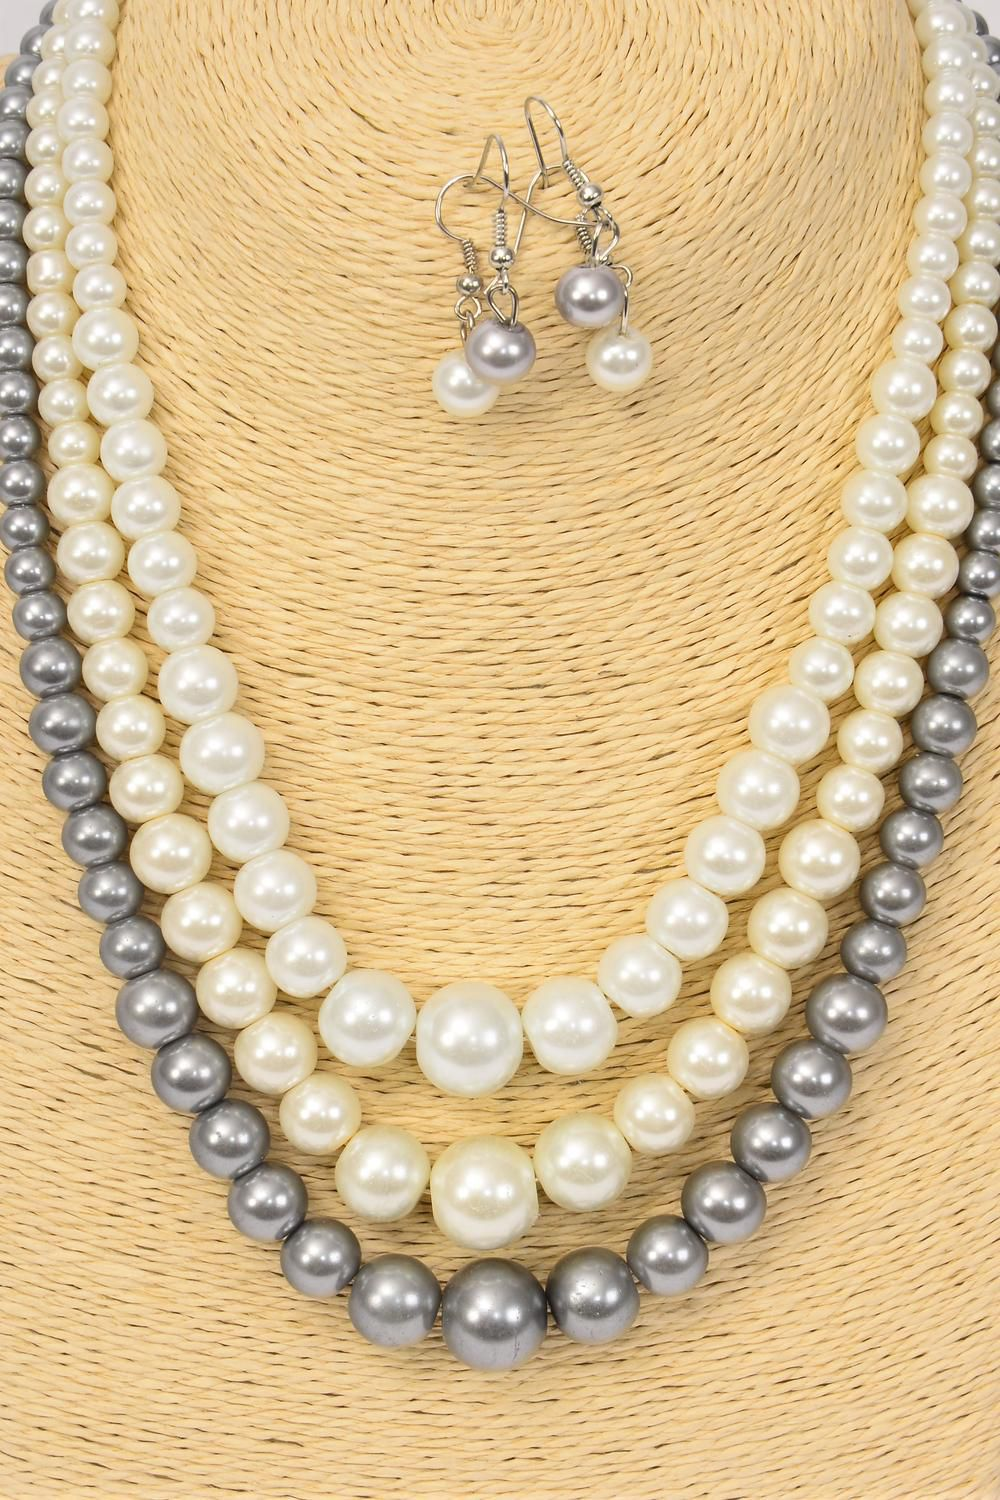 "Necklace Sets Graduate From 16mm Glass Pearls 20 inch Long Natural/DZ **Natural** 20"" Long,4 white,4 Cream,4 Gray,3 Color Mix,Hang Tag & Opp bag & UPC Code-"